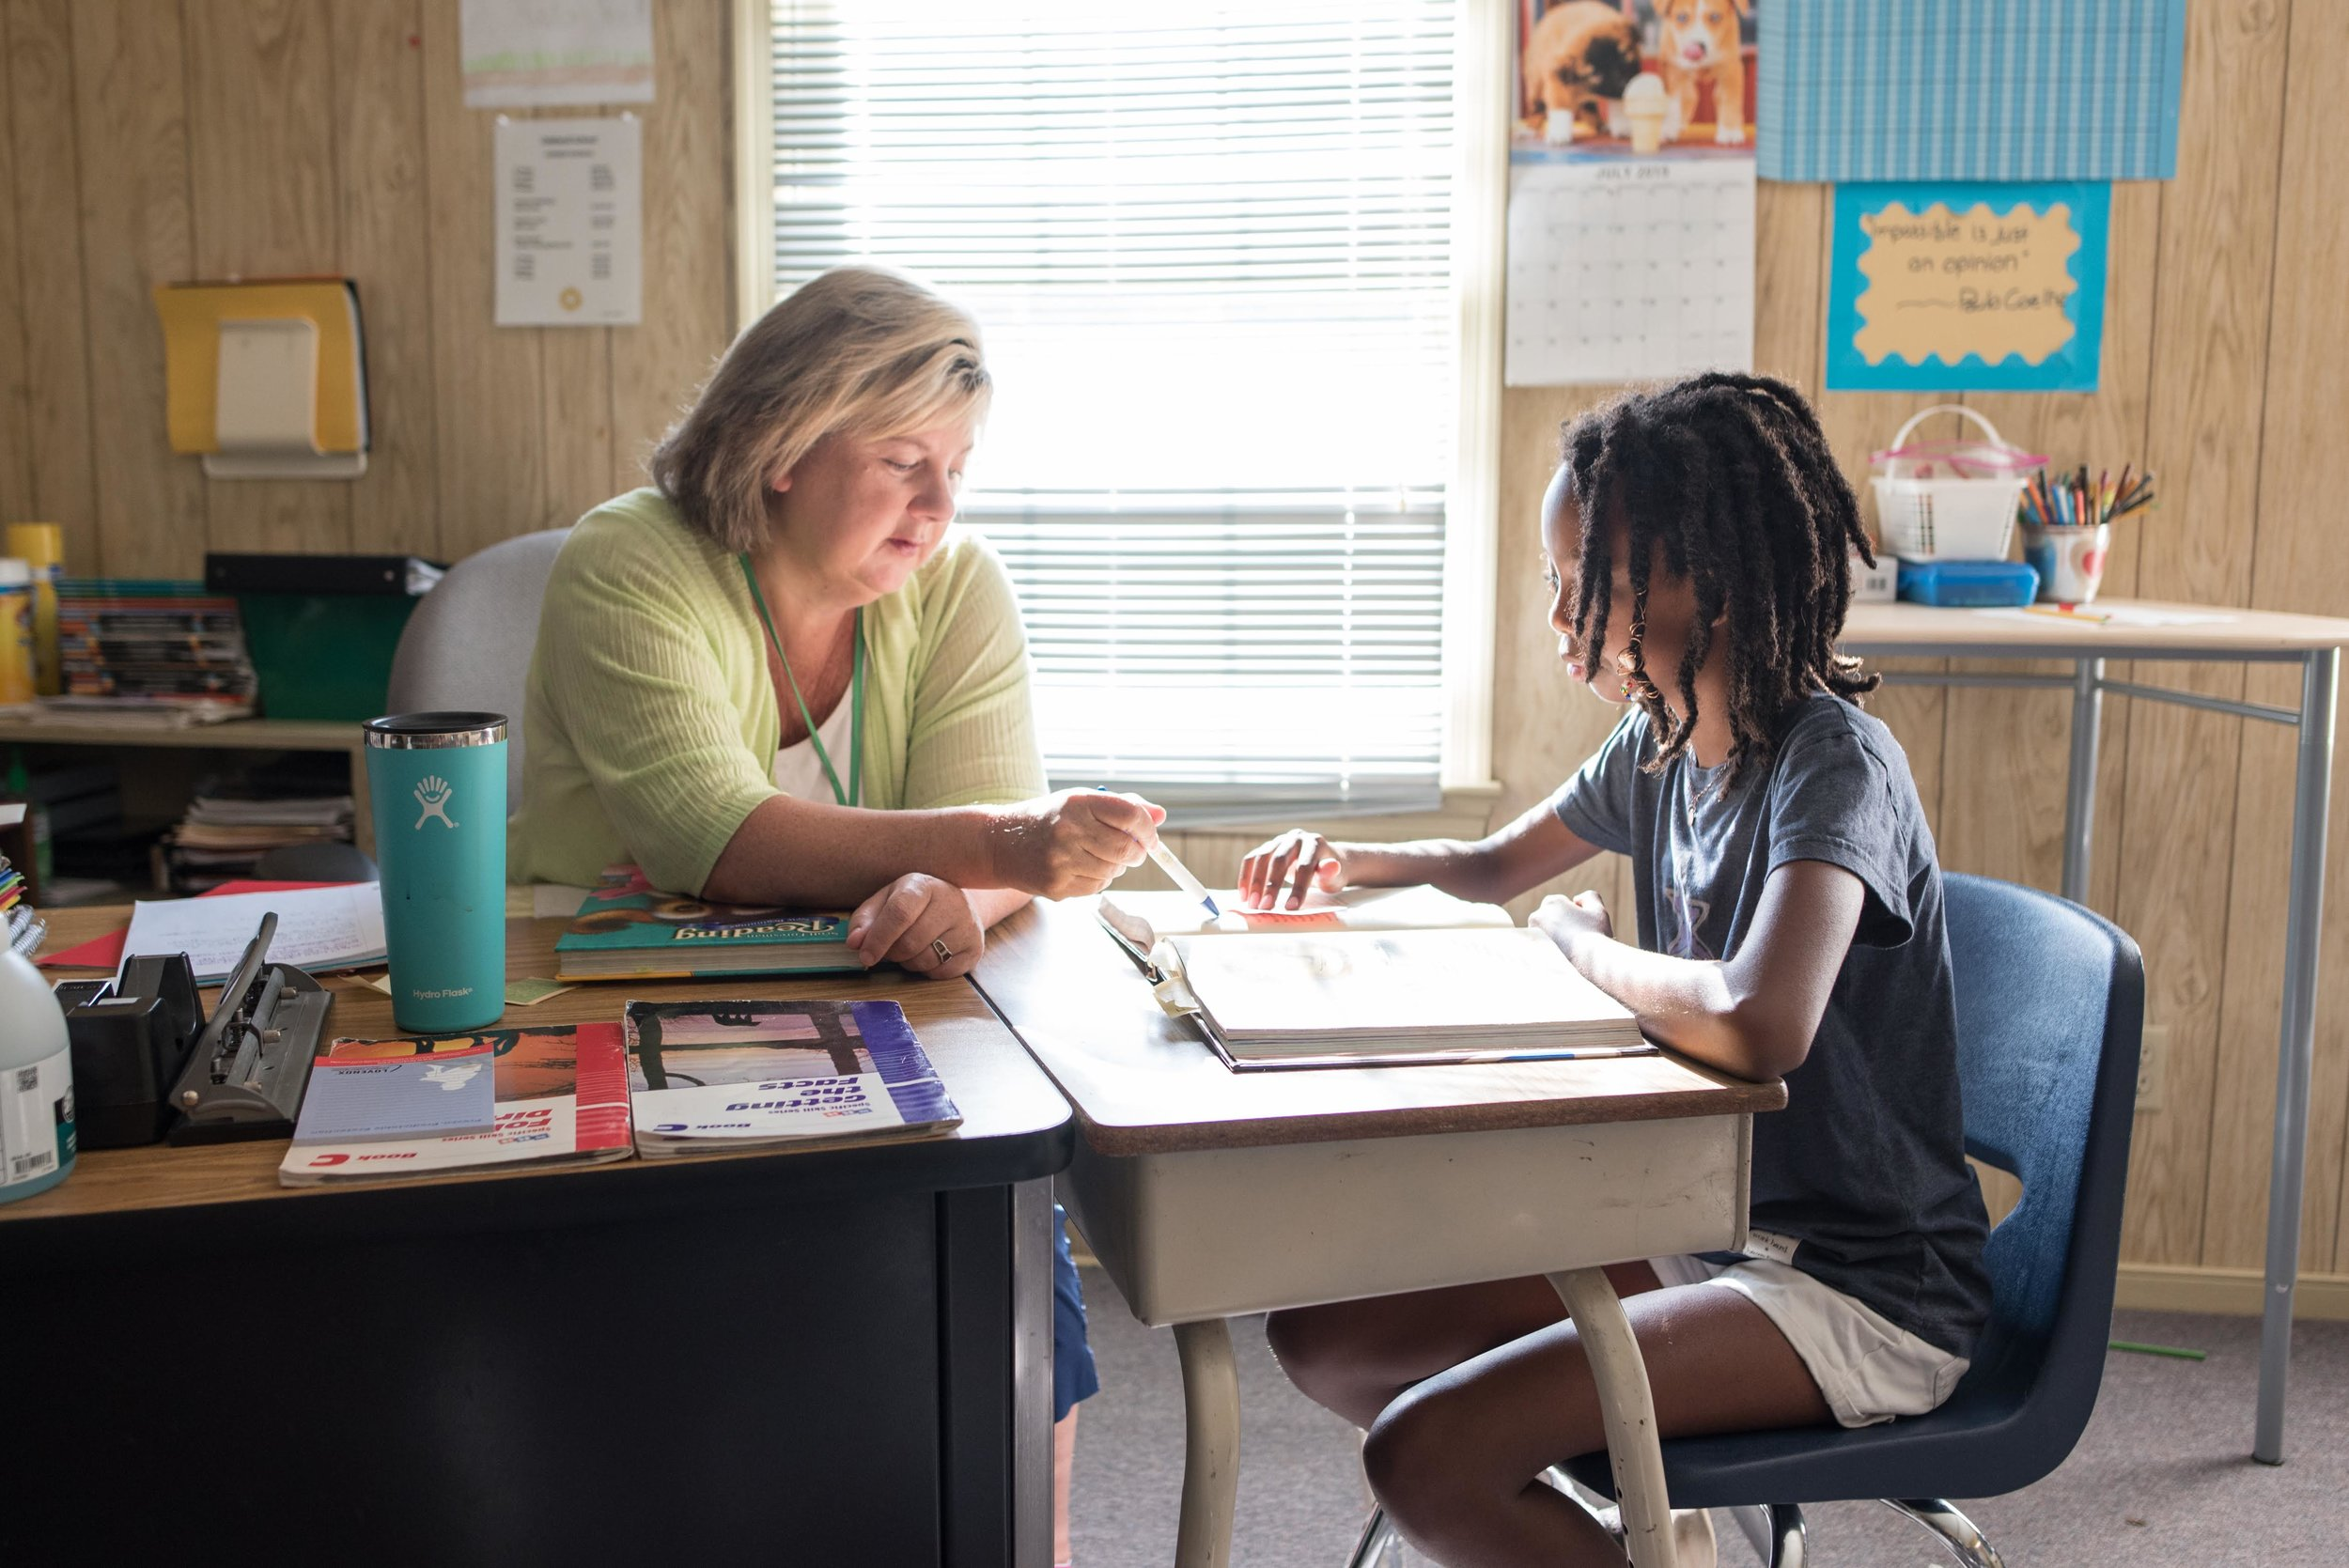 A teacher helps a student with specialized reading techniques during summer camp classes.